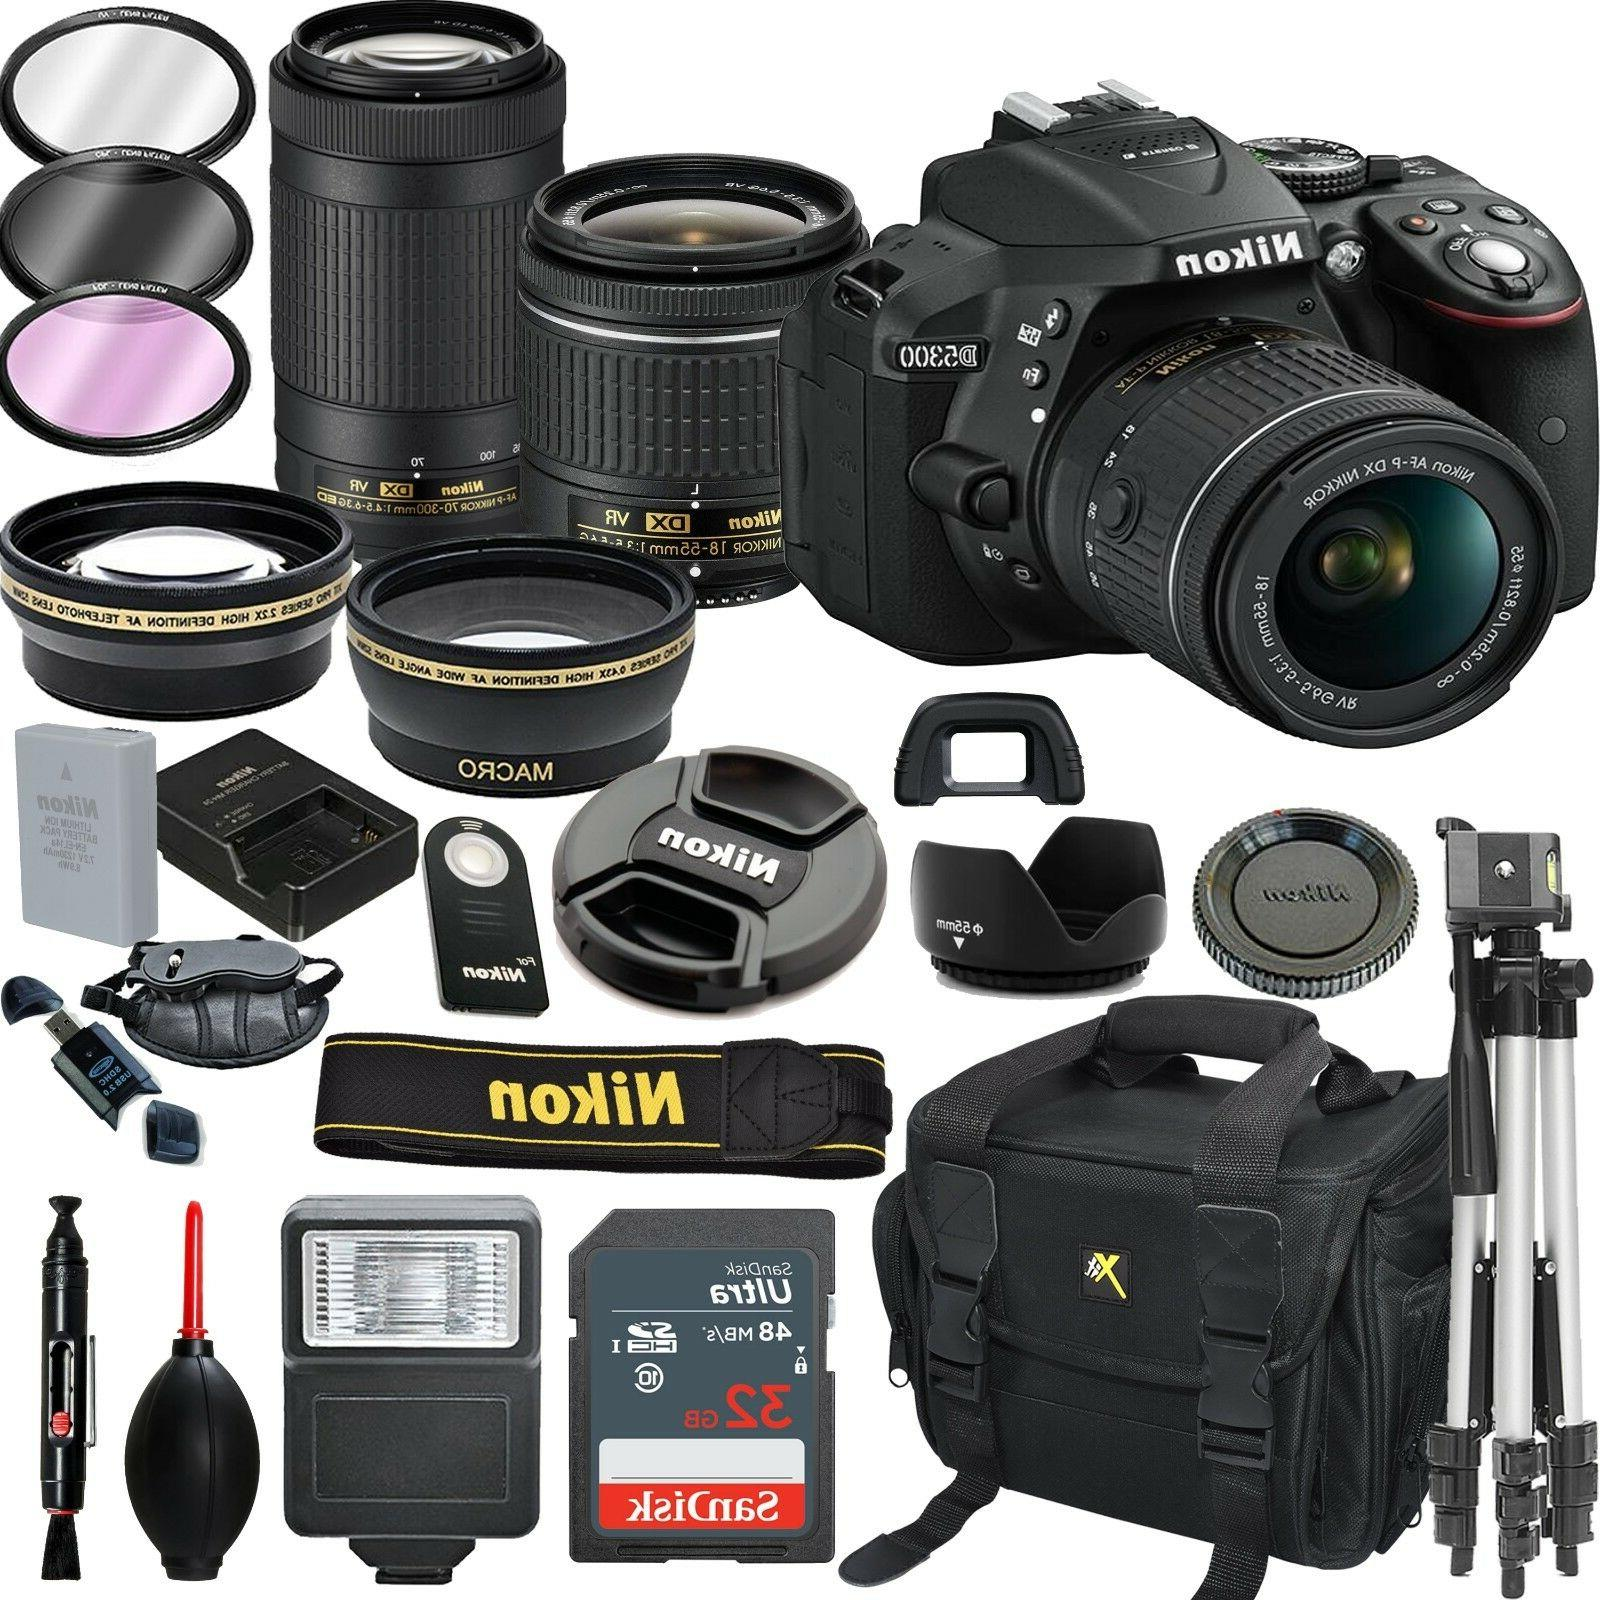 d5300 dslr camera with 18 55mm